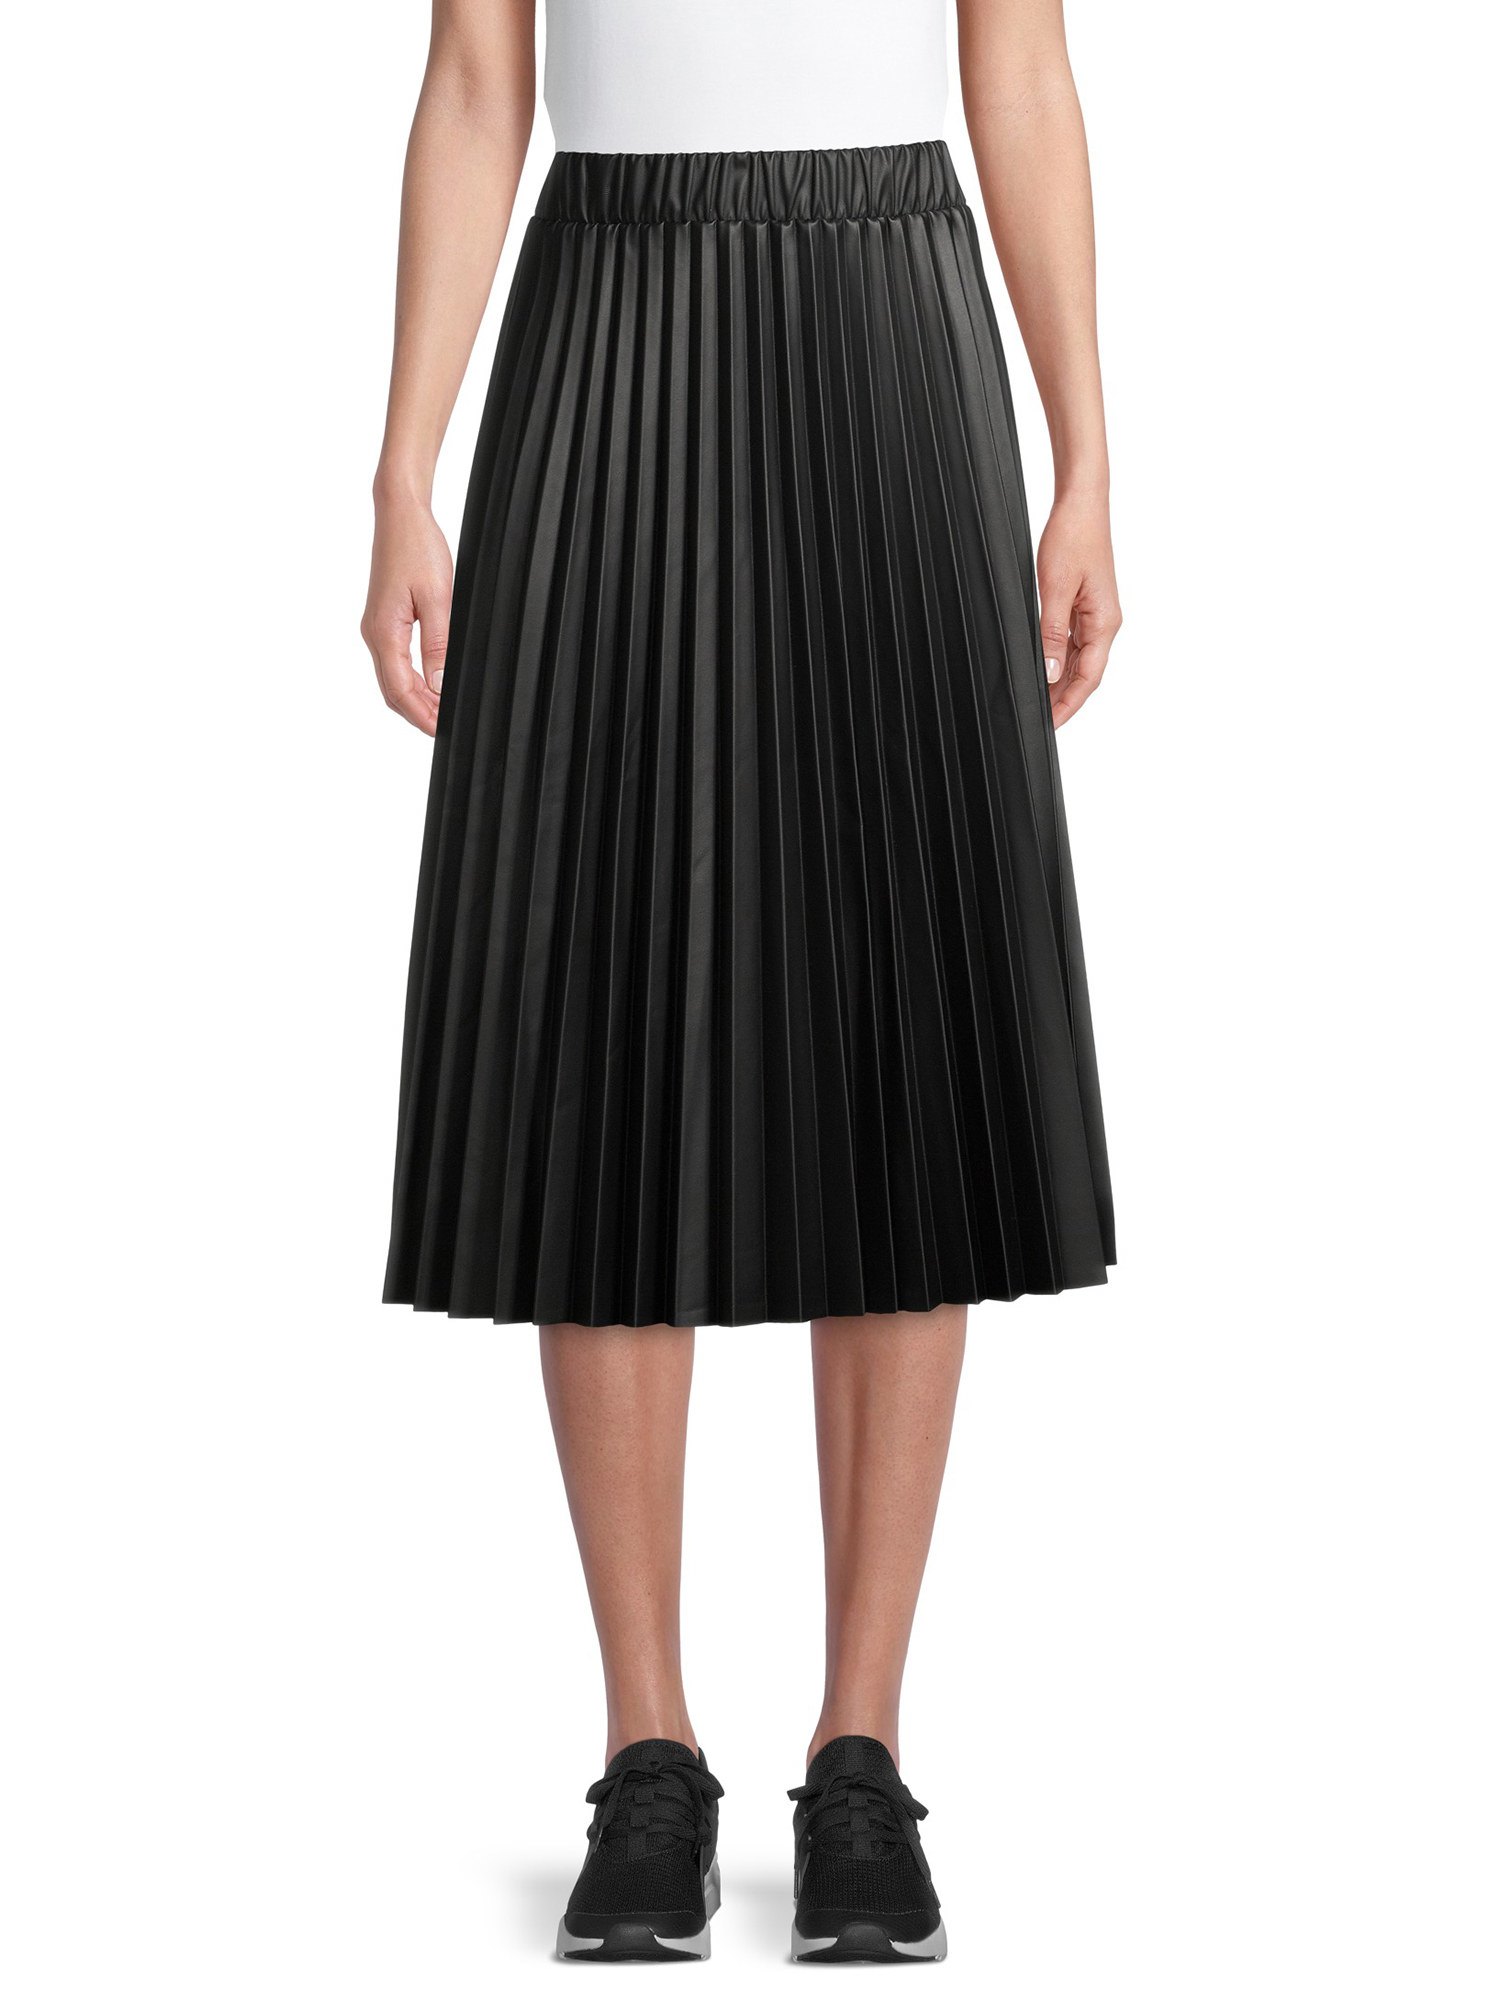 person wearing a faux leather midi skirt with a white t shirt and black tennis shoes